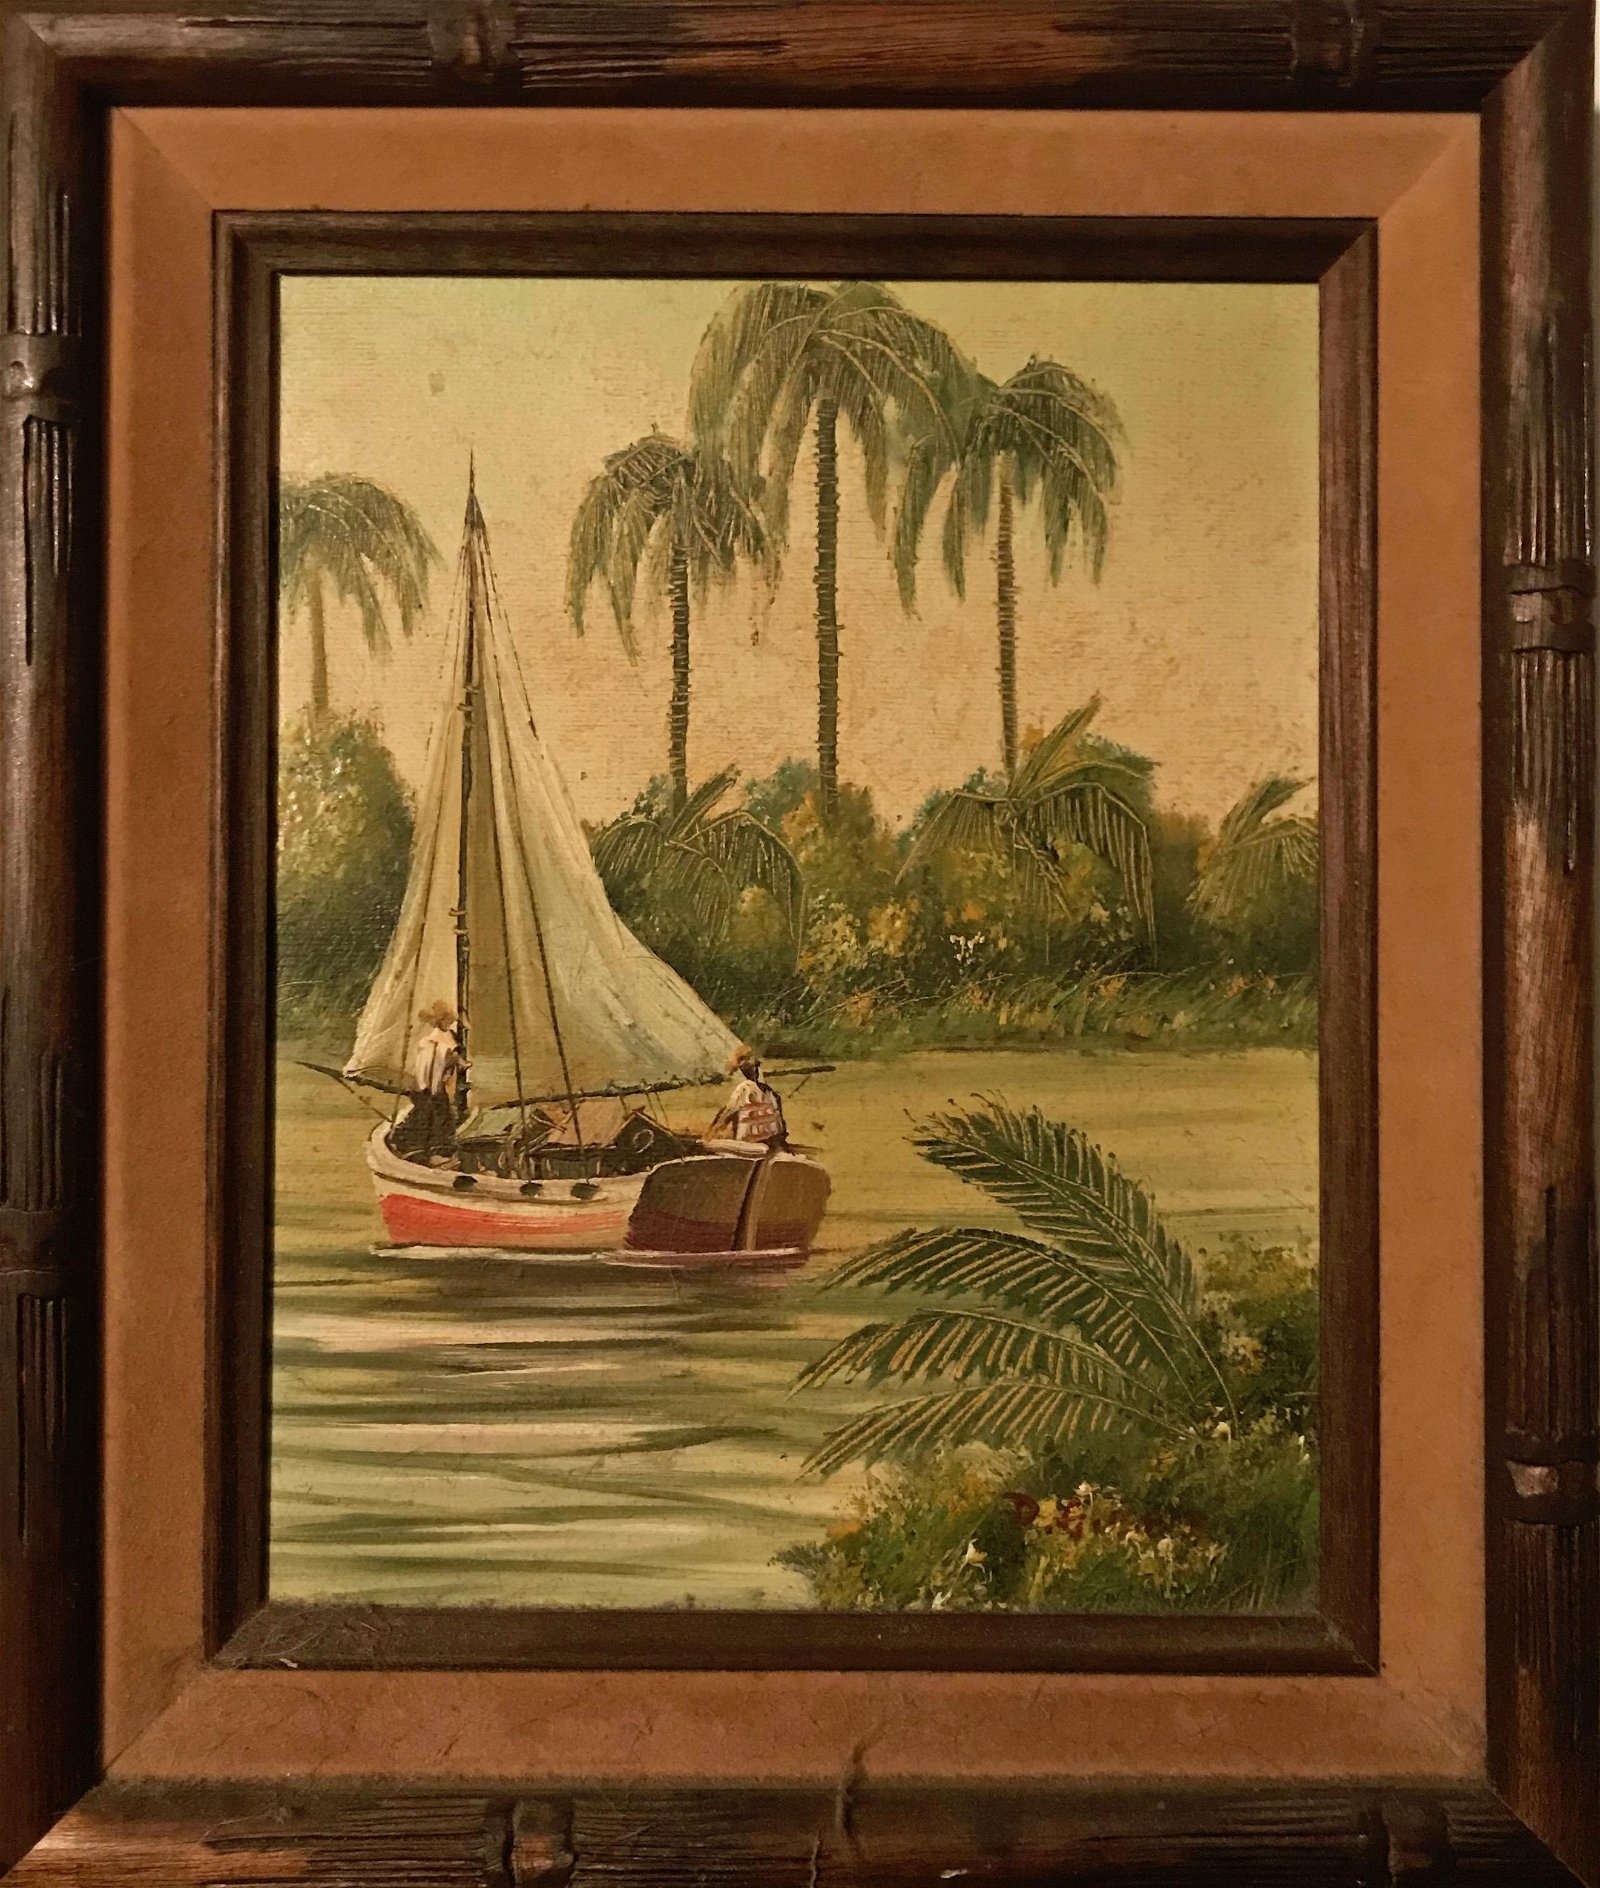 Tropical River Landscape Painting, Donald Gibbs 1970s